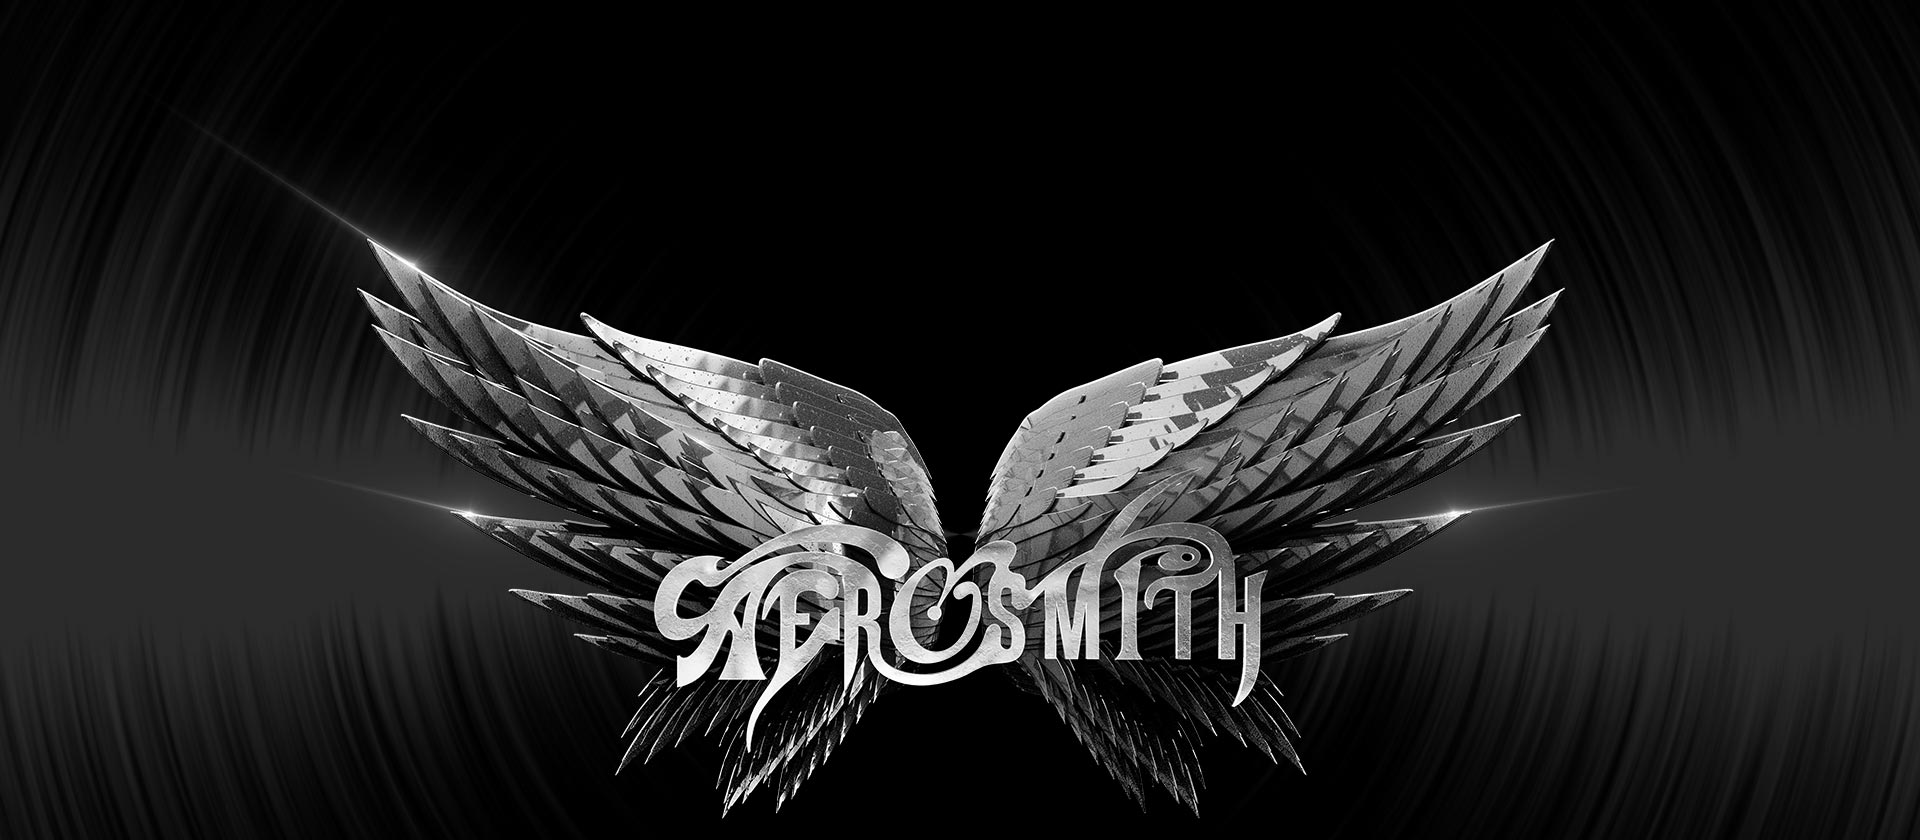 Aerosmith Tour Dates Tickets And The Vip Experience